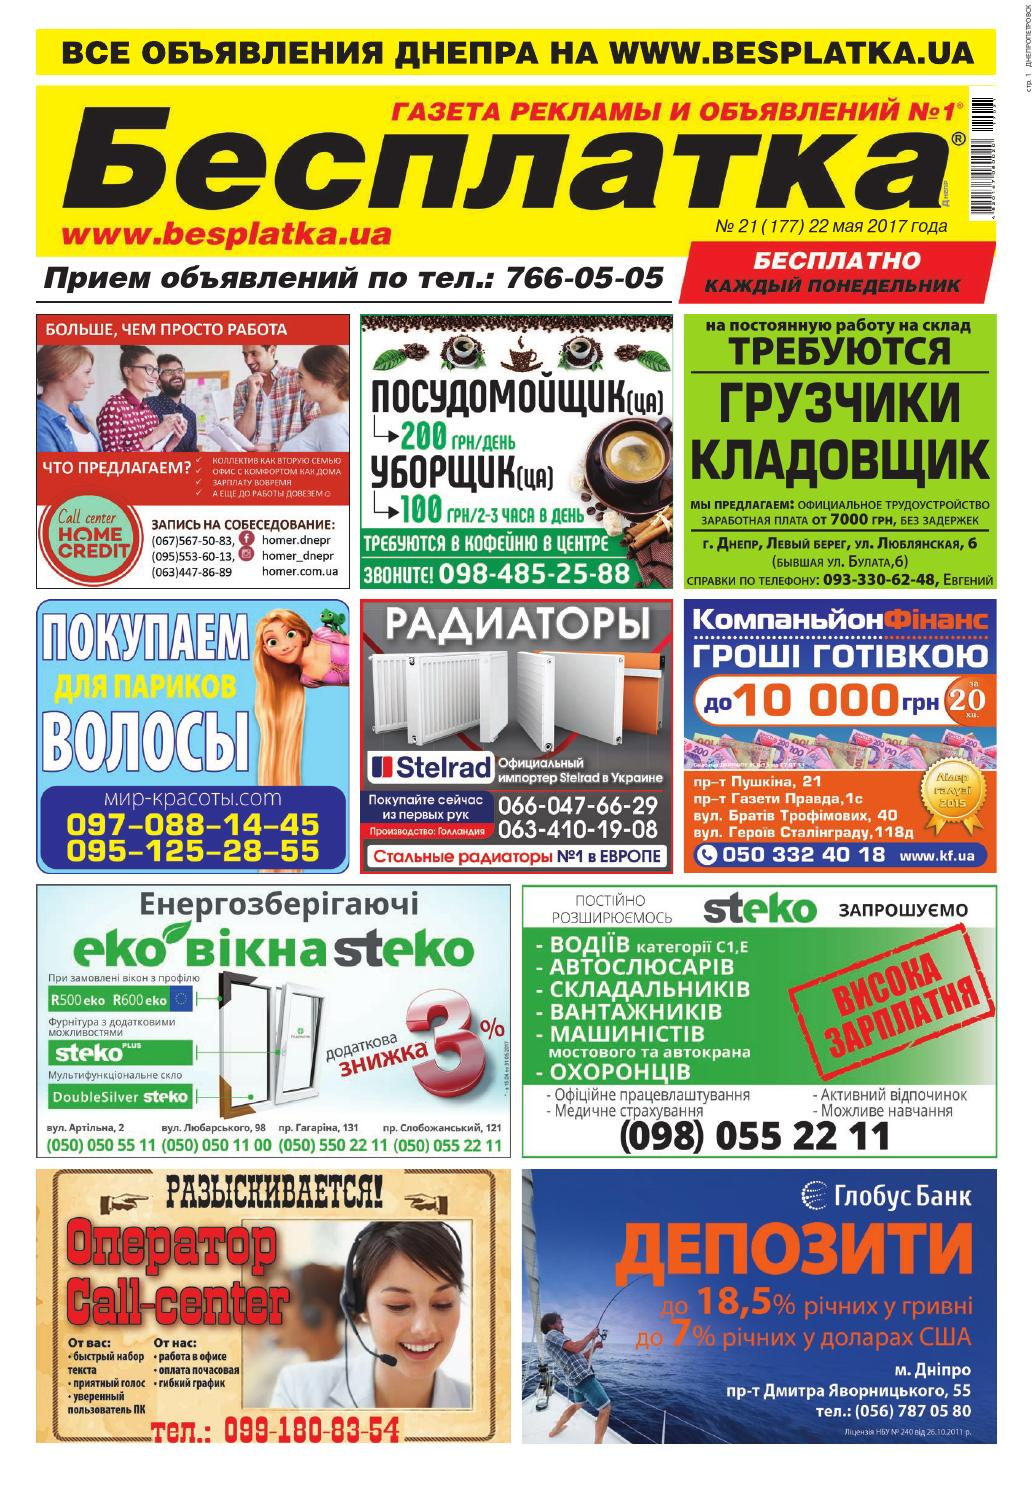 Besplatka  21 Днепр by besplatka ukraine - issuu ec825a1d949a5